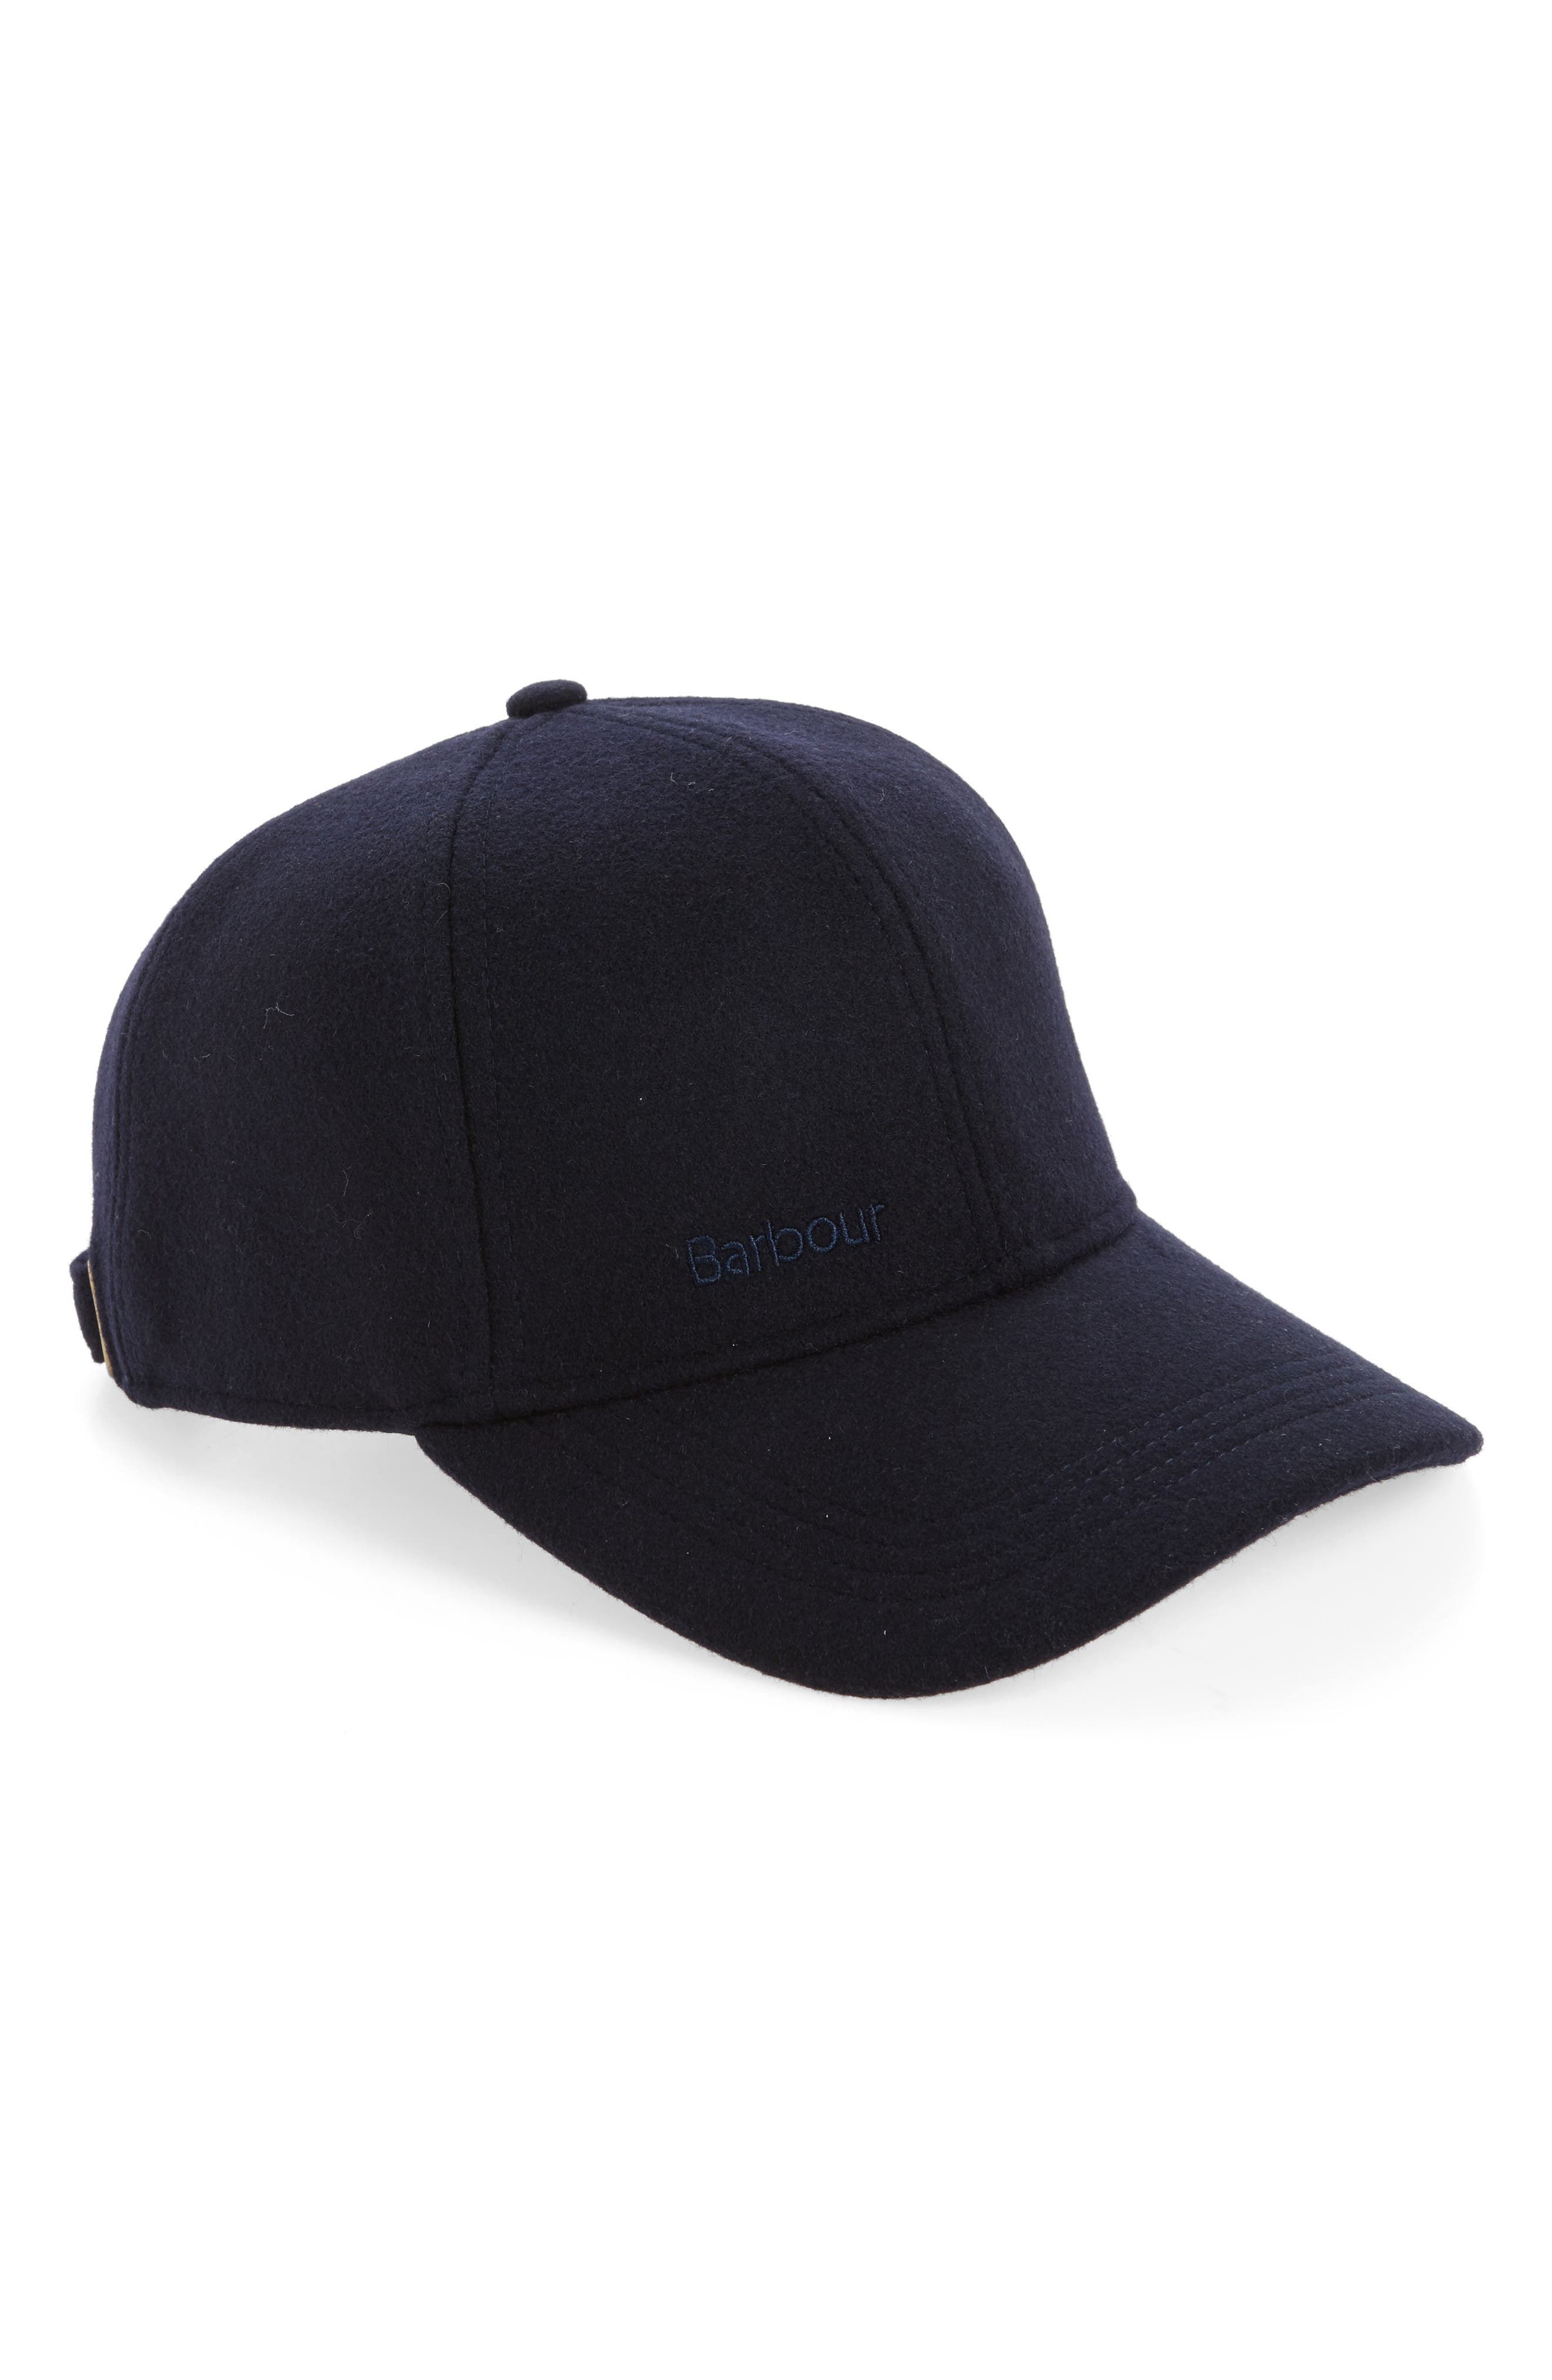 927eed529ef Hats Barbour Outerwear